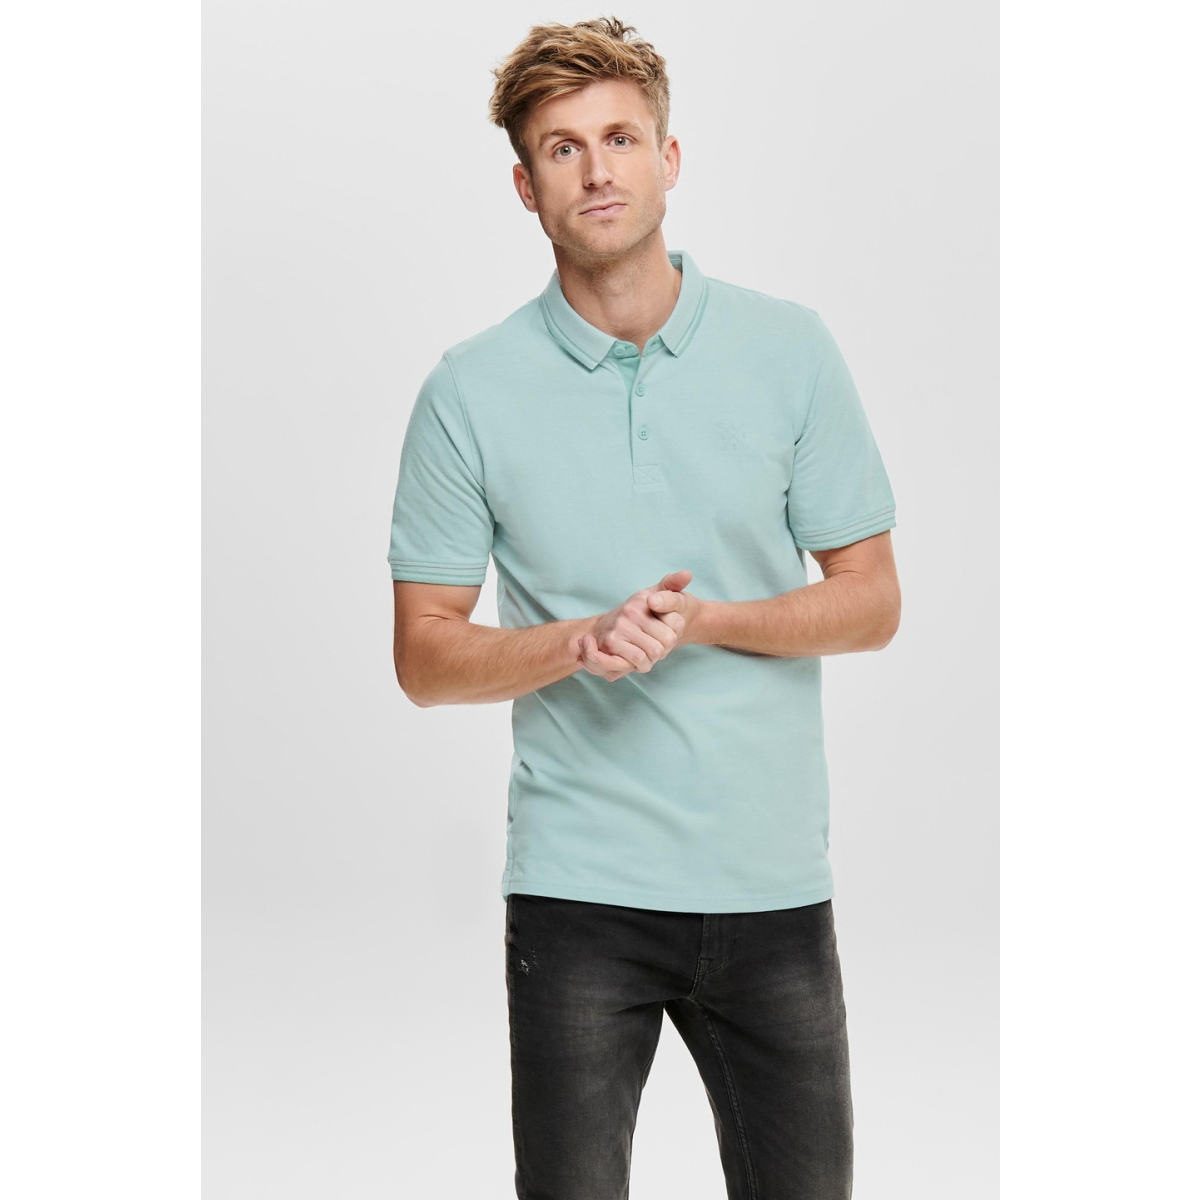 onsstan ss fitted polo tee (6560) noos 22011349 only & sons polo aquifer